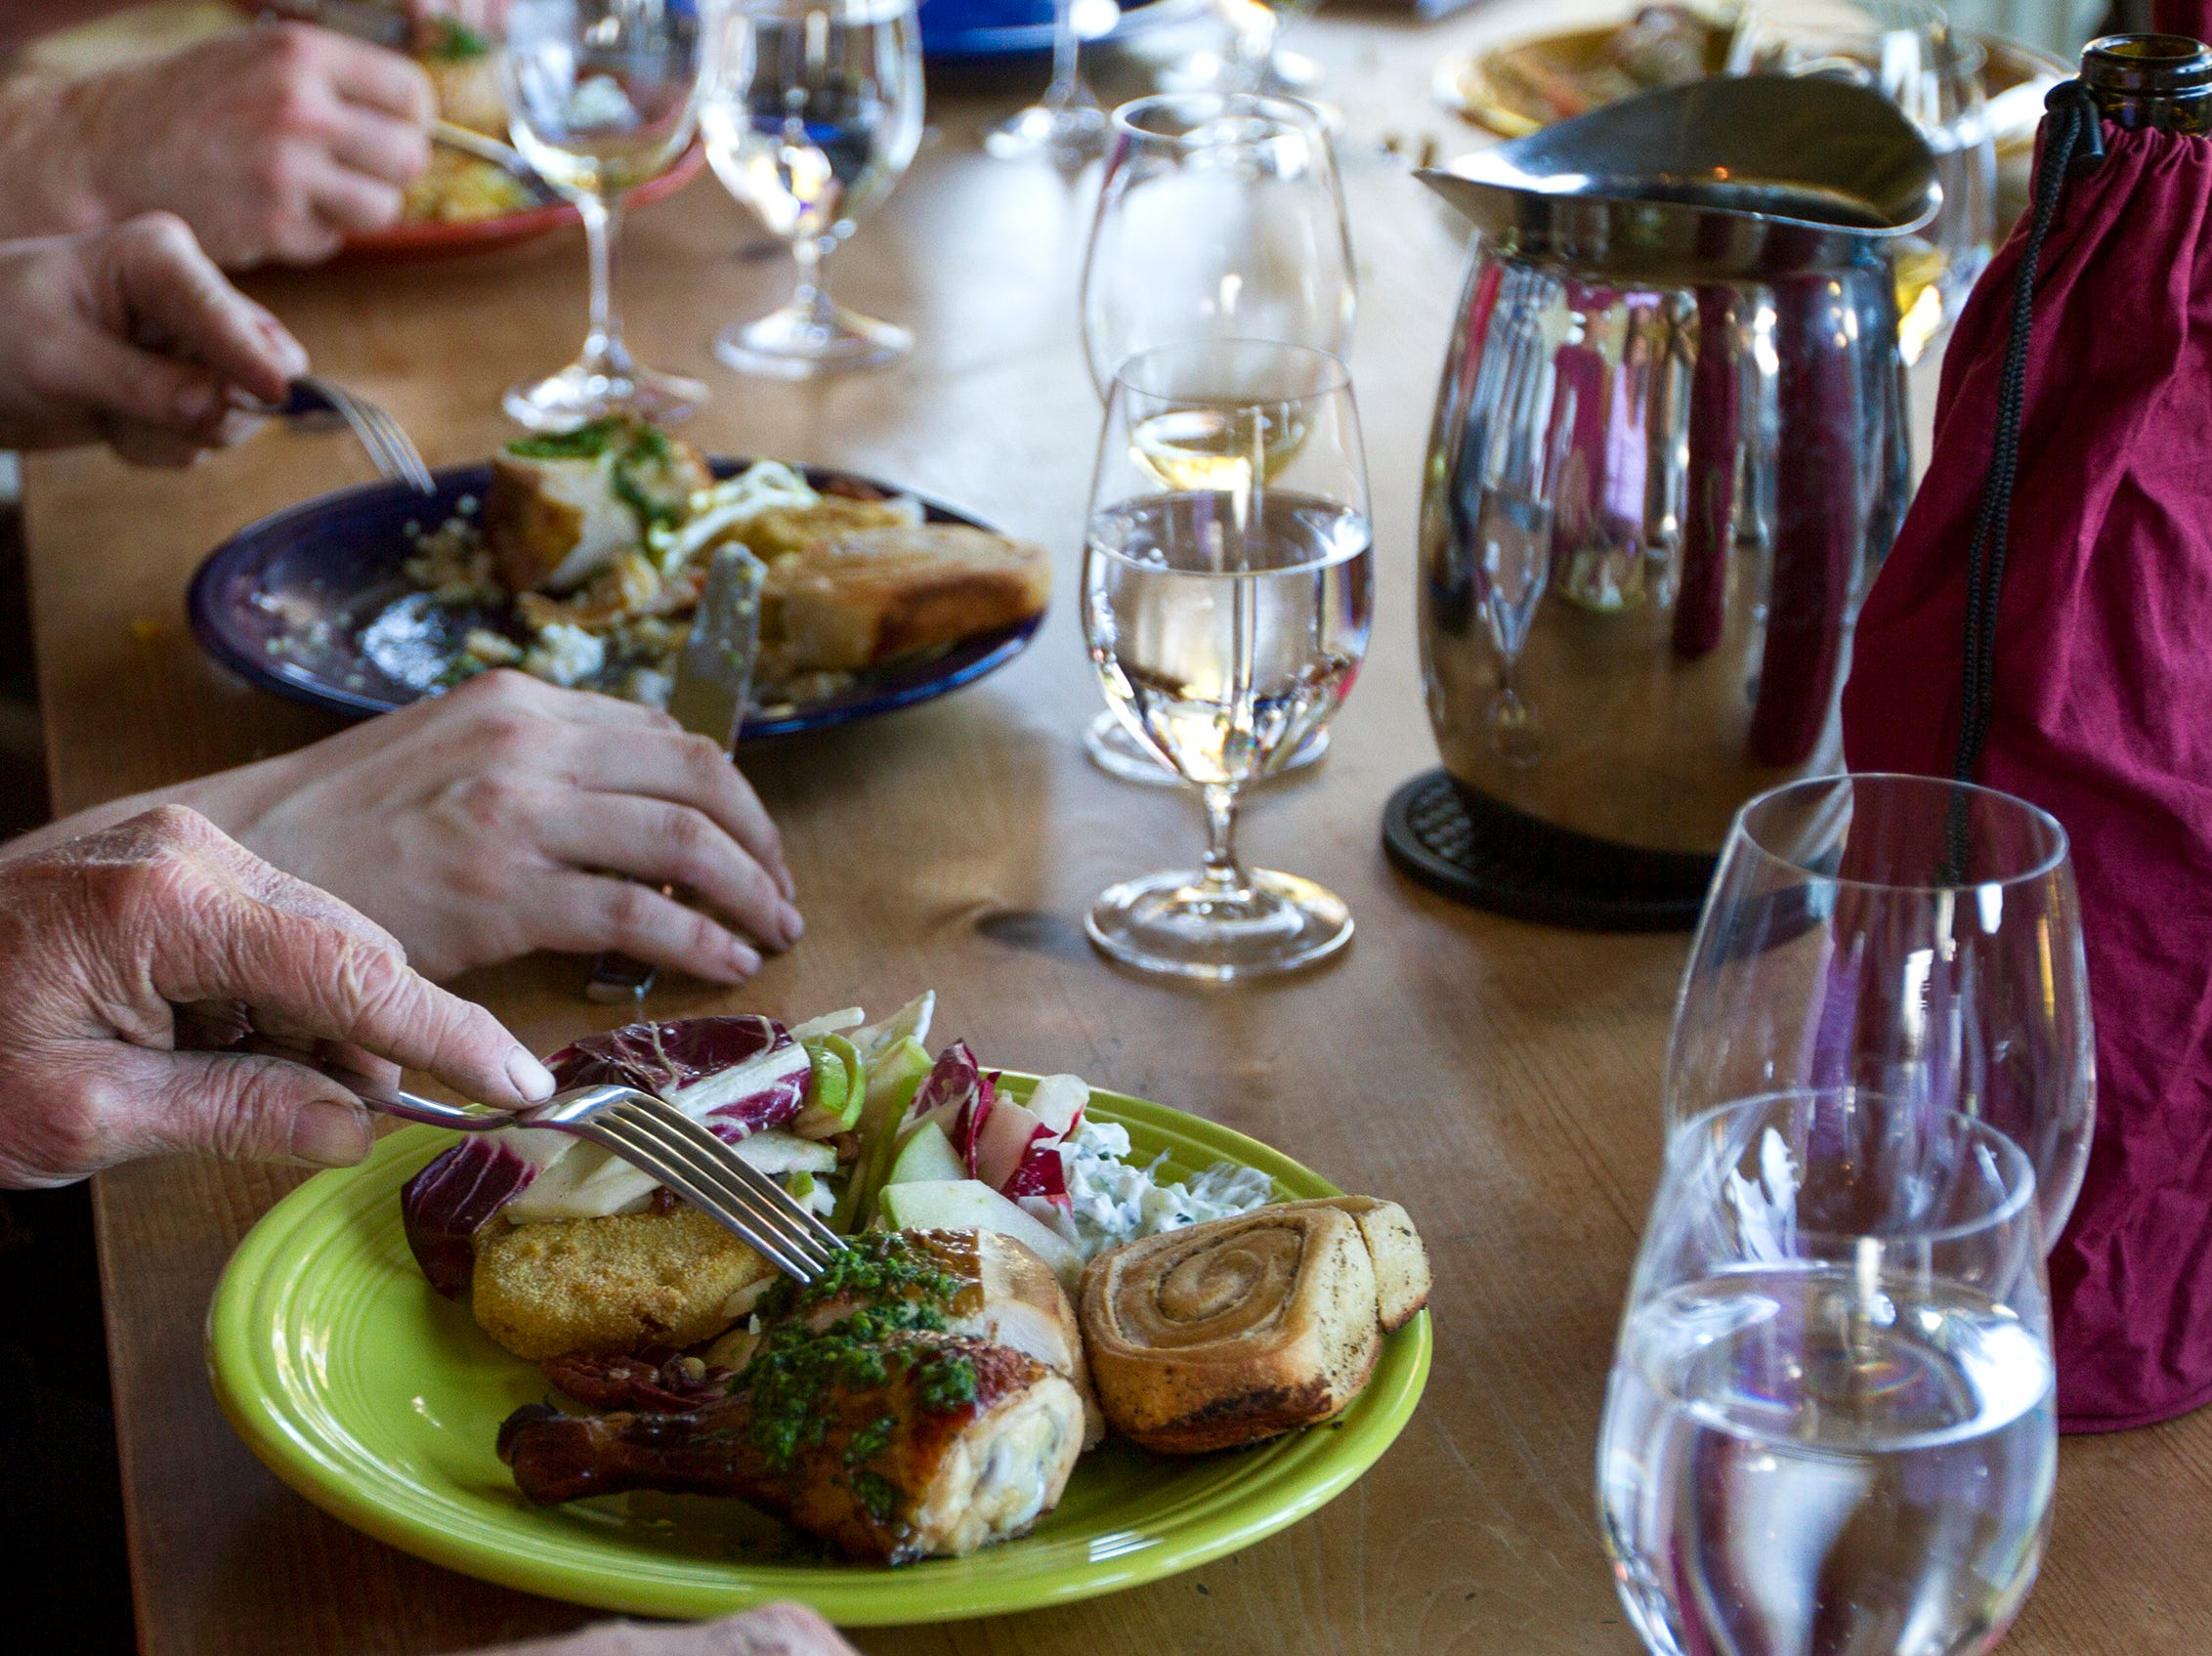 Cristom Winery vineyard workers enjoy a plate of chicken, salad, swirled buns and cardamom vanilla shortbread on Tuesday, Oct. 2, 2018. During harvest season Willamette Valley wineries will sometimes hire a chef to cook for a crew working 12-hour days.